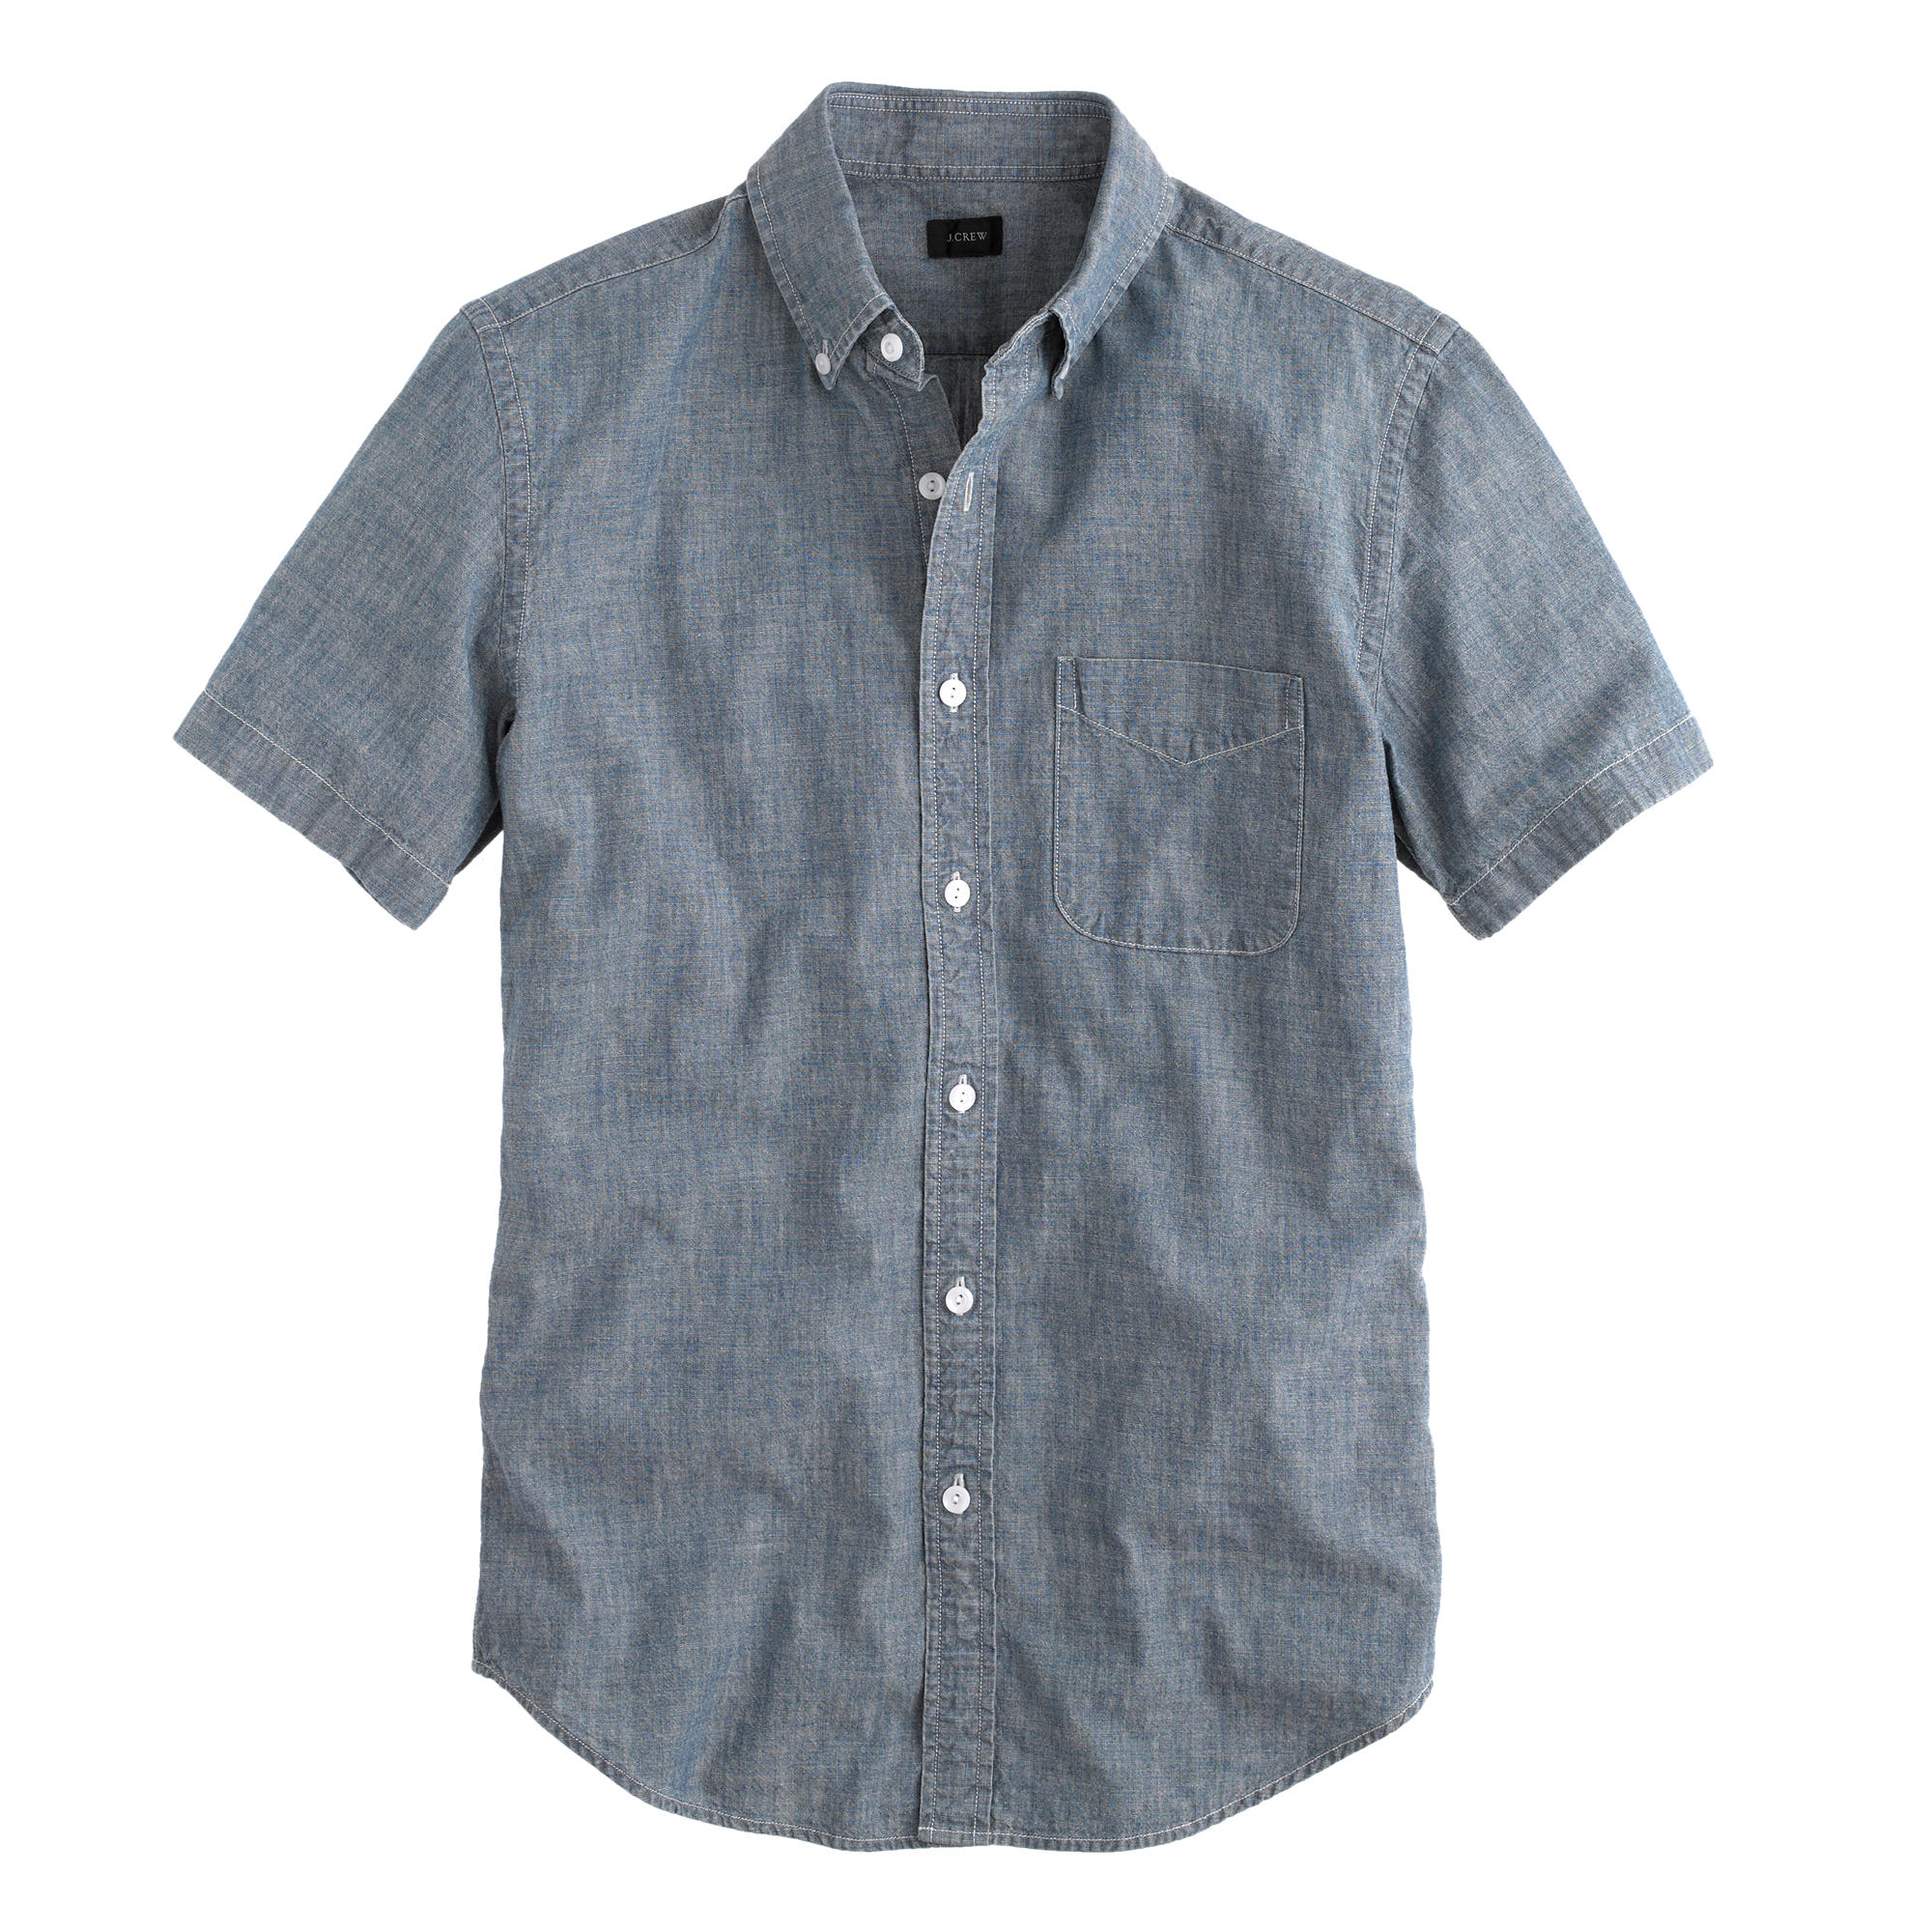 Find great deals on eBay for mens short sleeve chambray shirts. Shop with confidence.